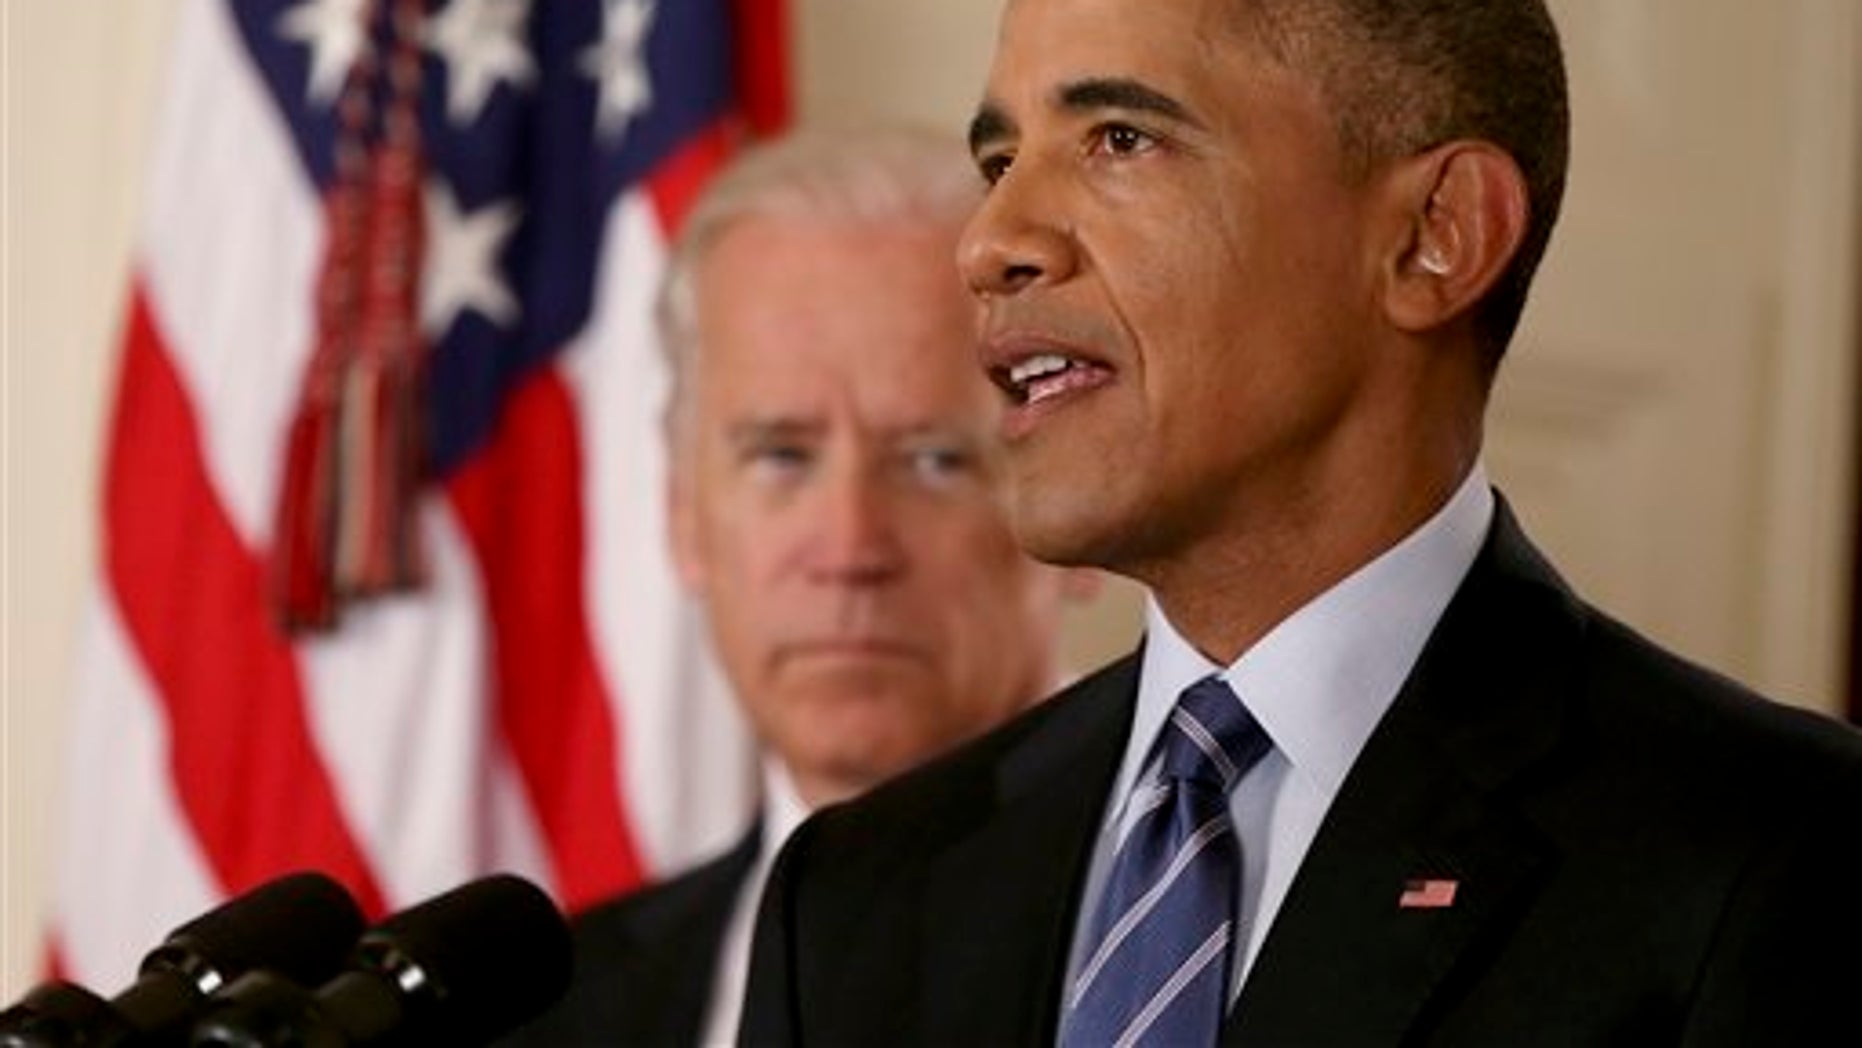 President Barack Obama, standing with Vice President Joe Biden, delivers remarks in the East Room of the White House in Washington, Tuesday, July 14, 2015, after an Iran deal is reached.  Obama says every path to a nuclear weapon will be cut off from Iran under a historic agreement announced in Vienna. (AP Photo/Andrew Harnik, Pool)